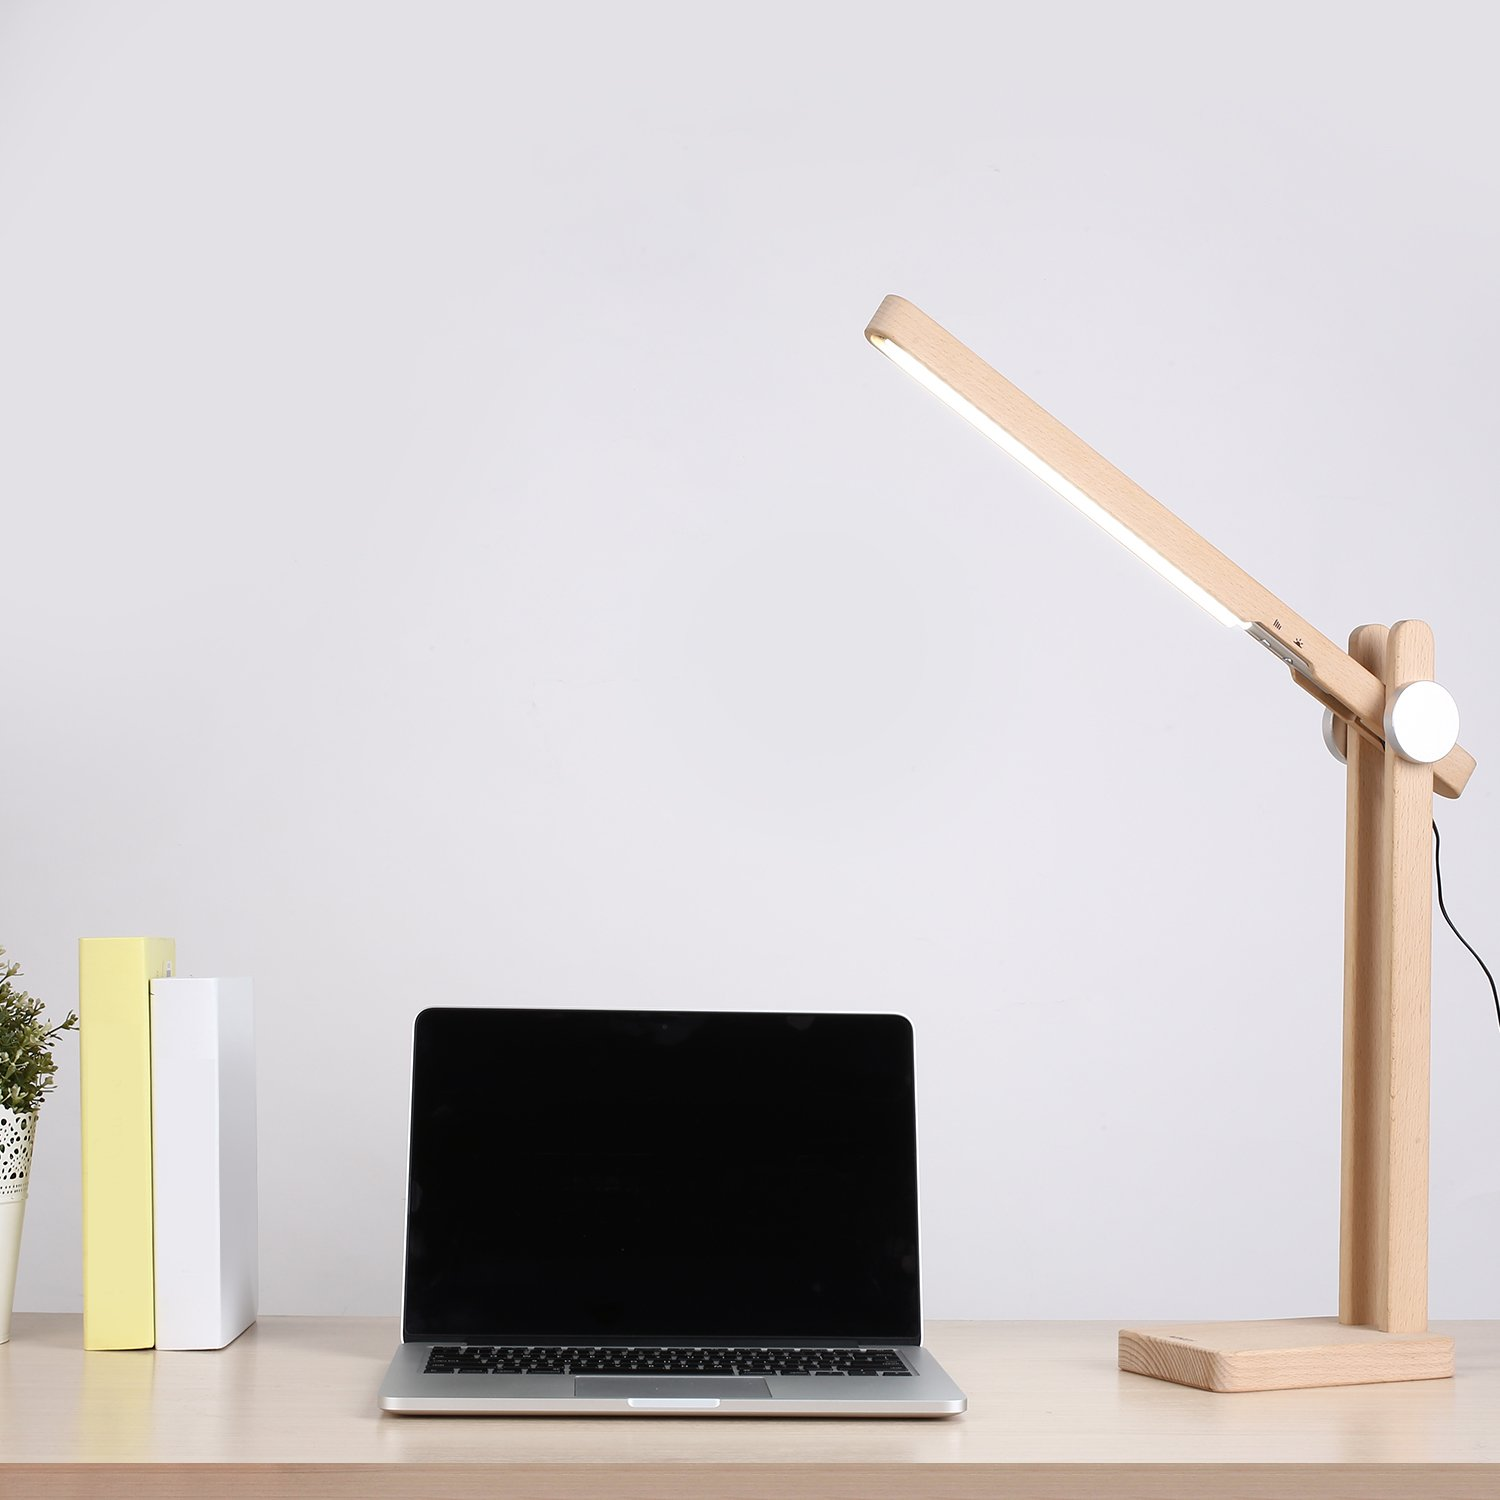 AUKEY LED Desk Lamp, Natural Wood Design Table Lamp for £19.99